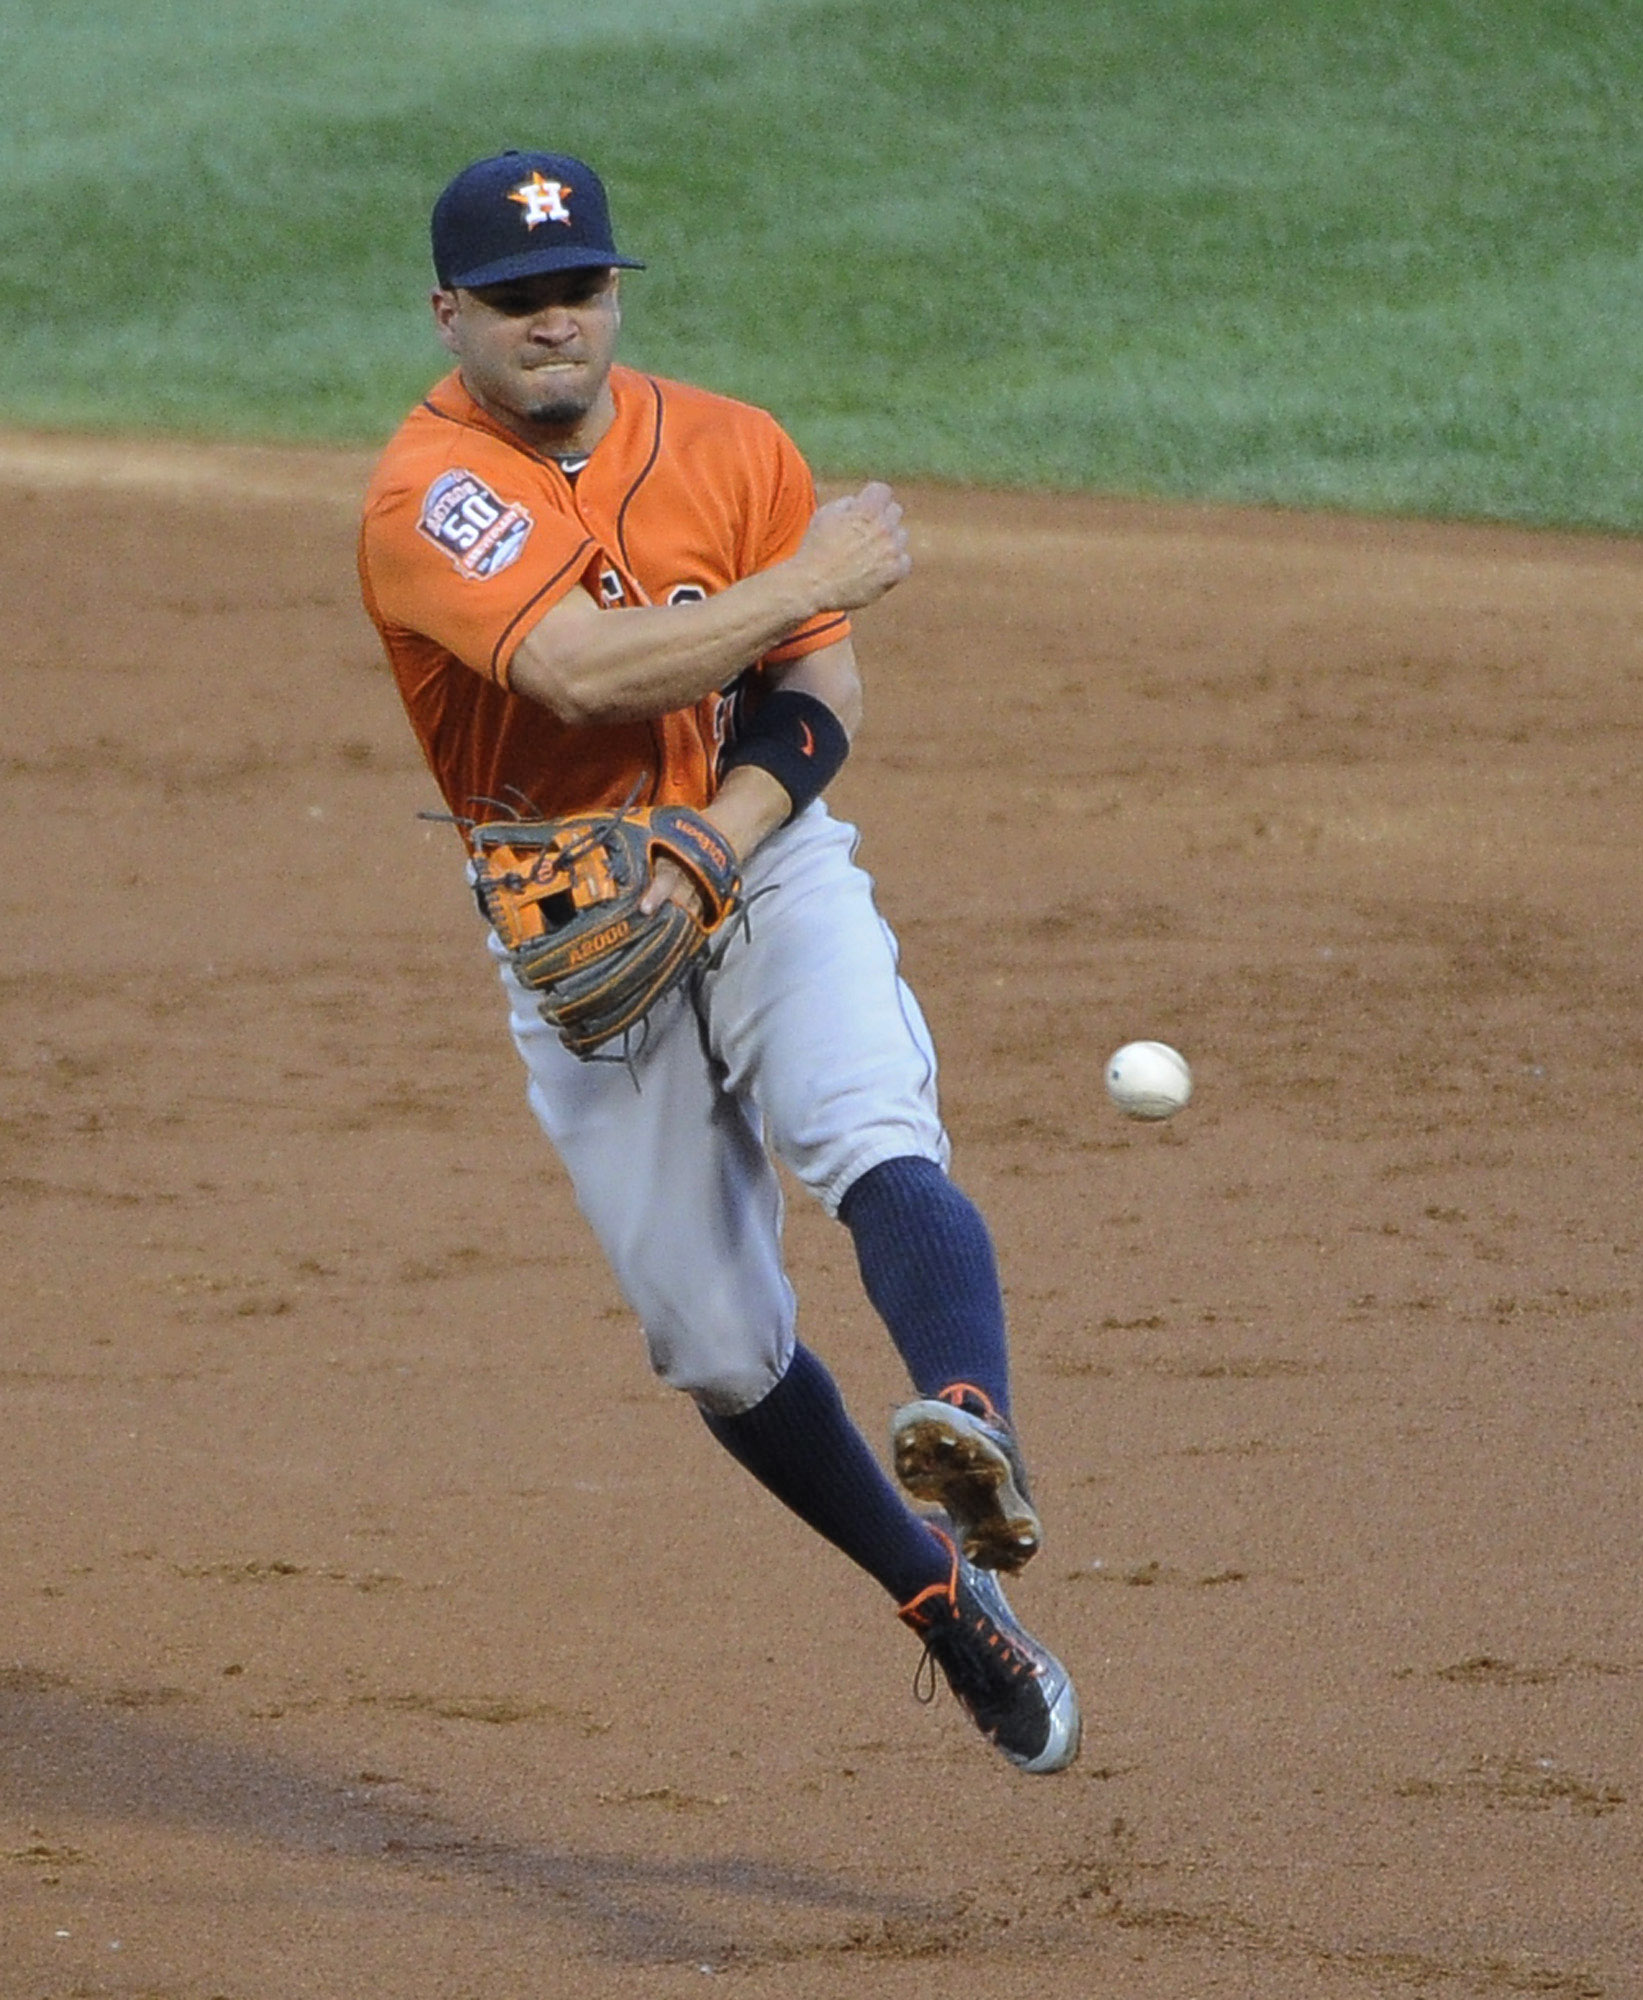 Houston Astros second baseman Jose Altuve (27) makes a play on Chicago White Sox's Adam Eaton during the third inning of a baseball game,Tuesday, June 9, 2015 in Chicago. (AP Photo/David Banks)